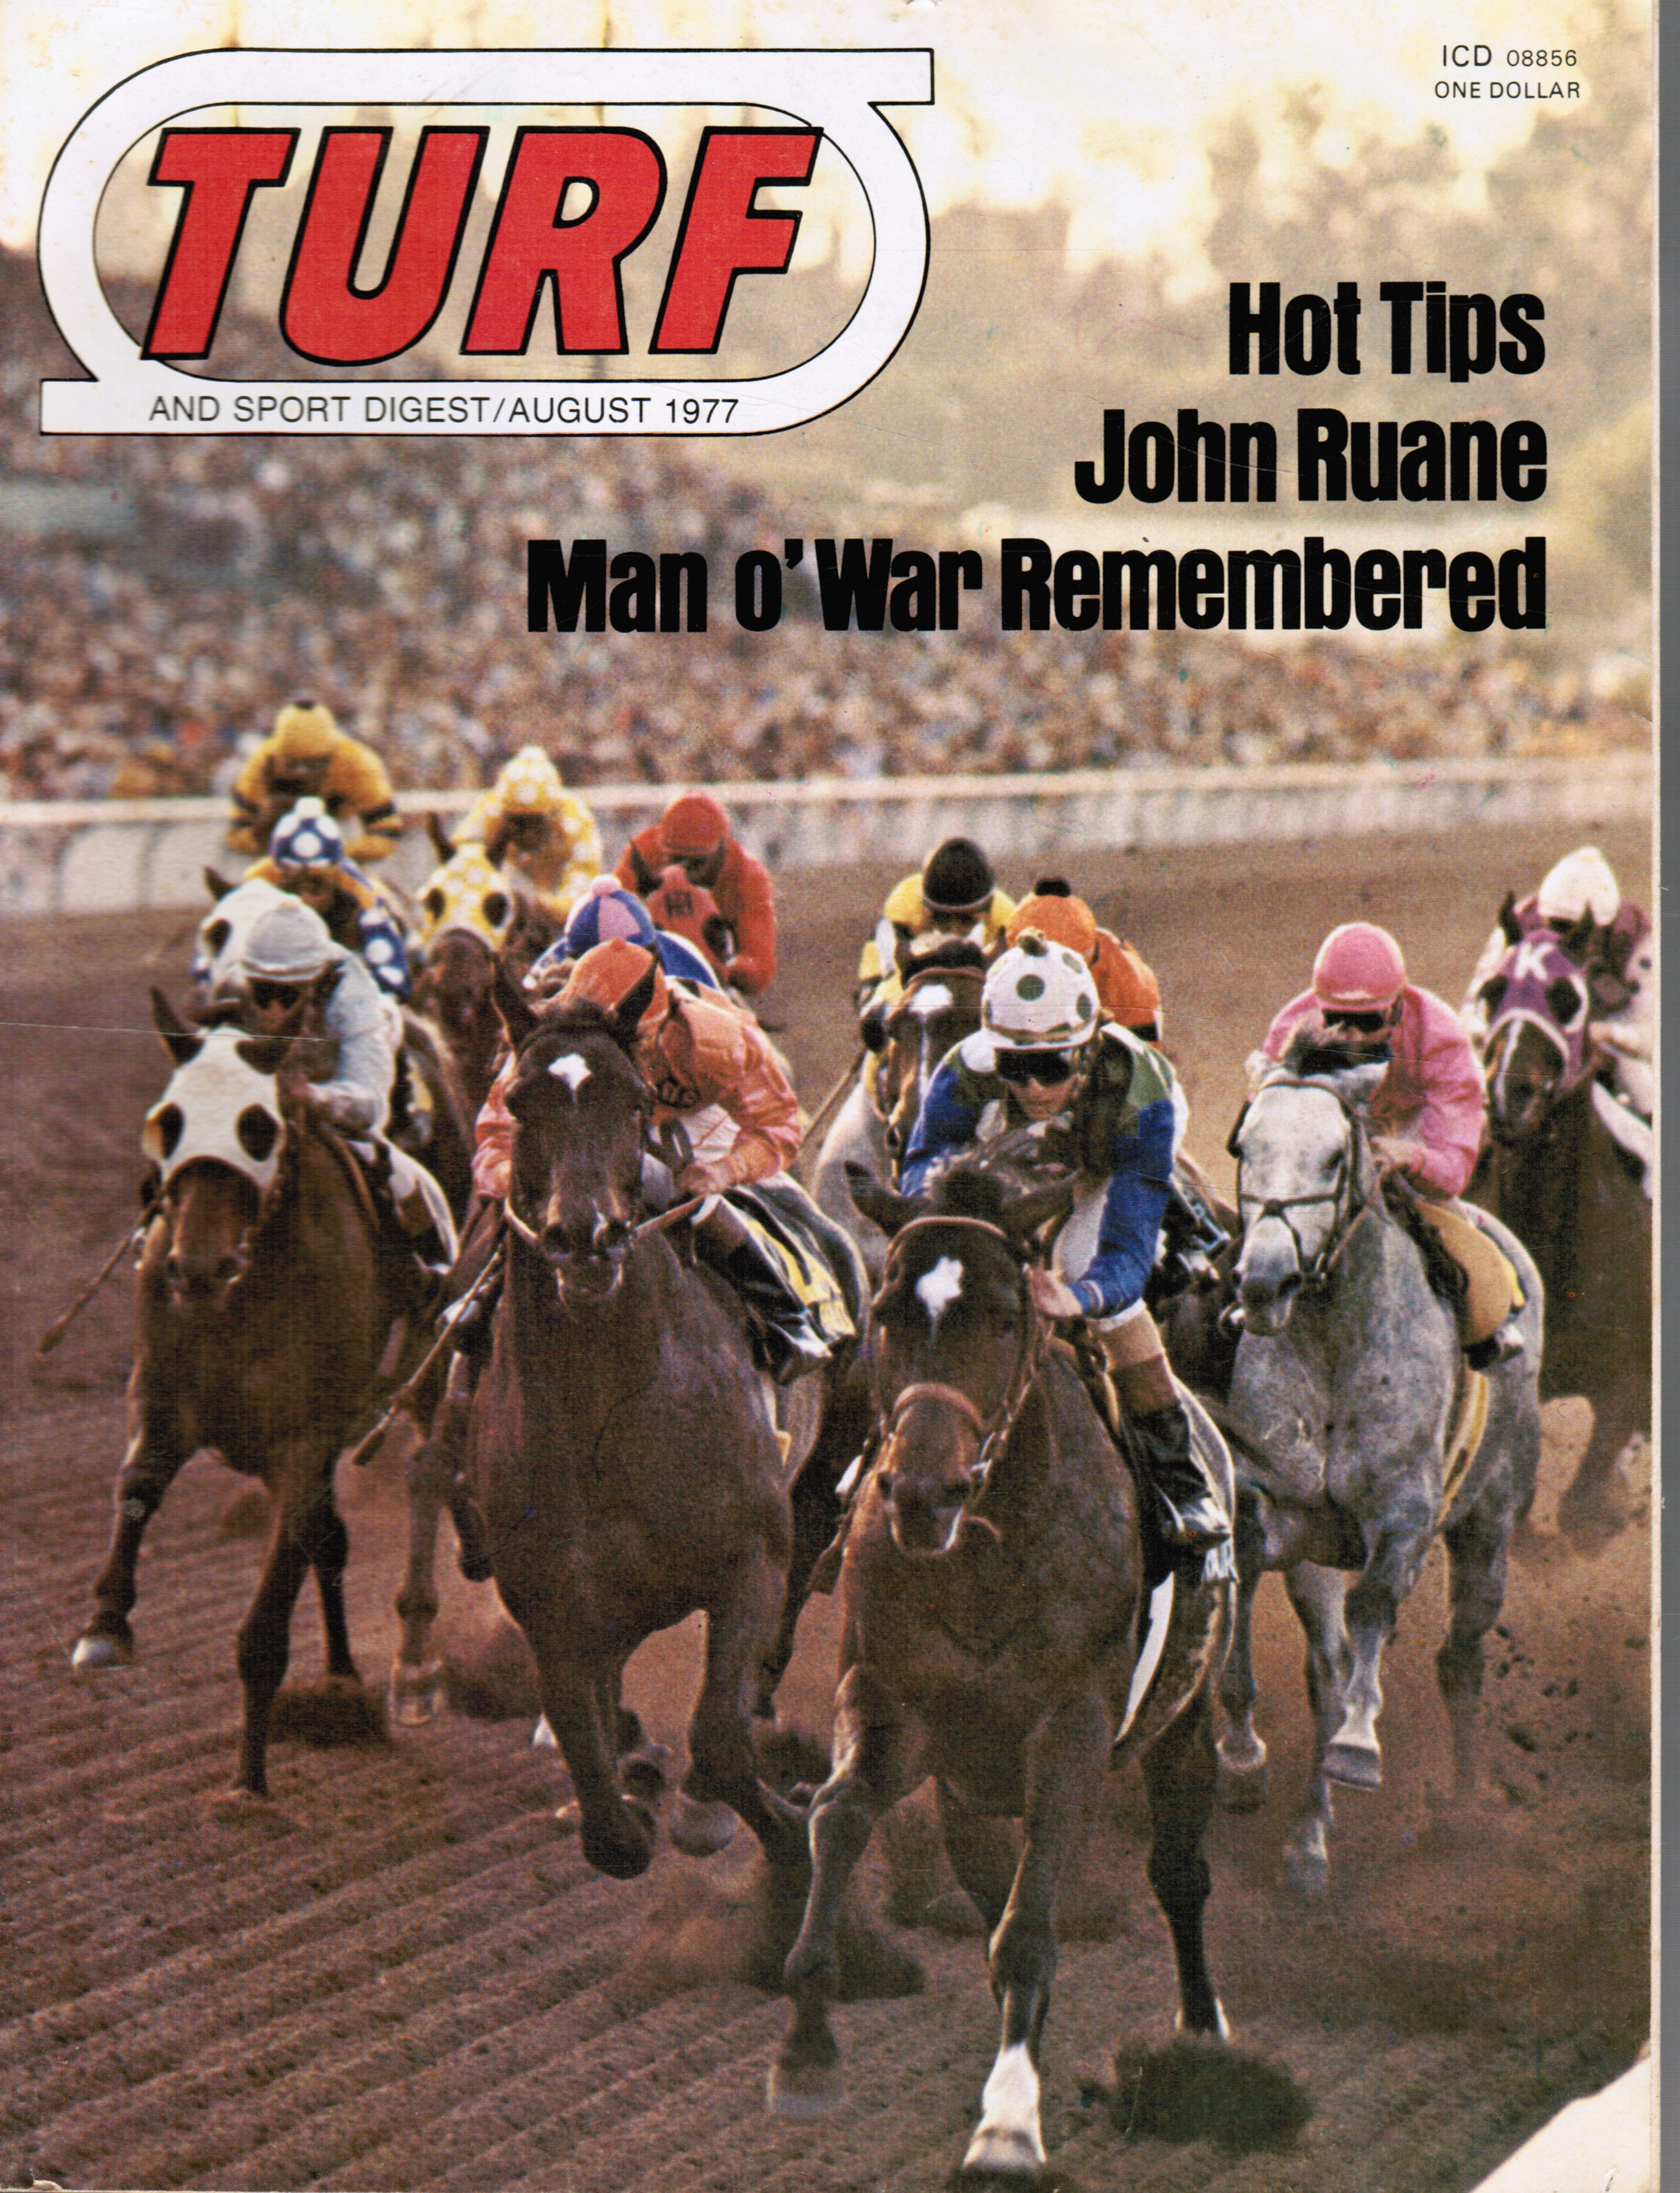 Image for Turf and Sport Digest: August 1977 Santa Anita Handicap (cover)